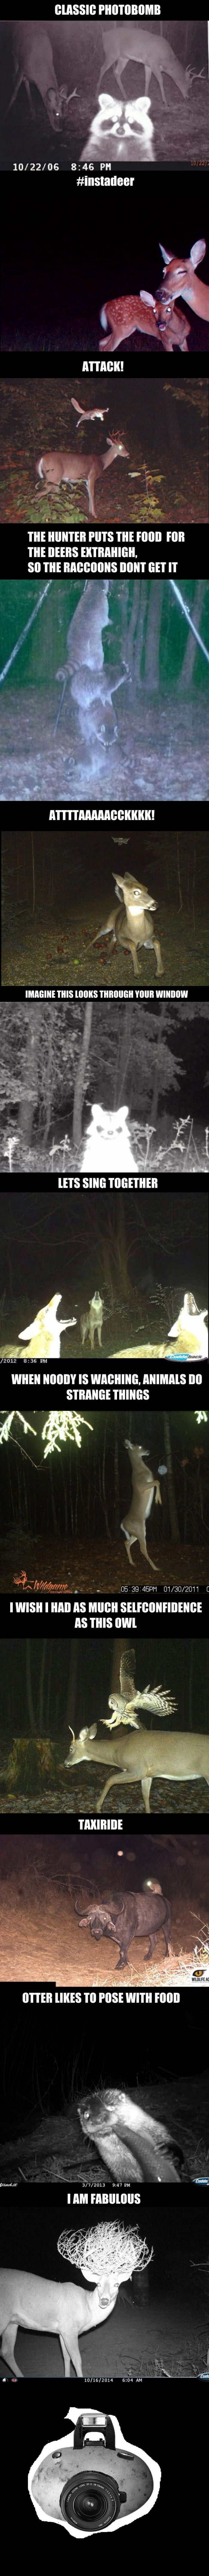 Animals do weird things, when they think they are alone - 9GAG